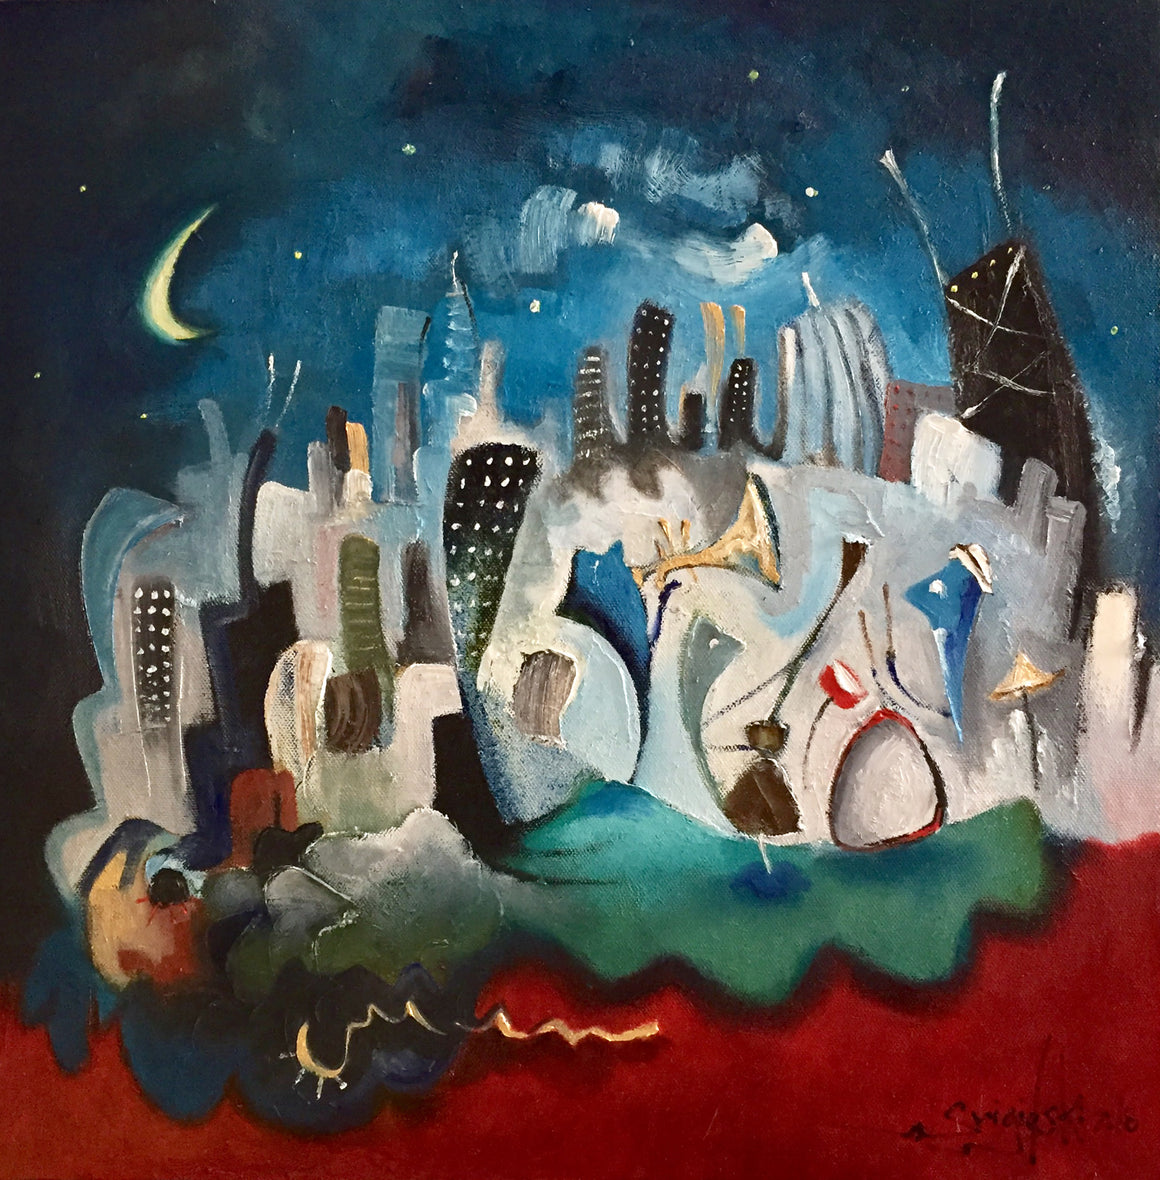 painting of a band at night with the Chicago skyline behind them painted by artist Joe Smigielski